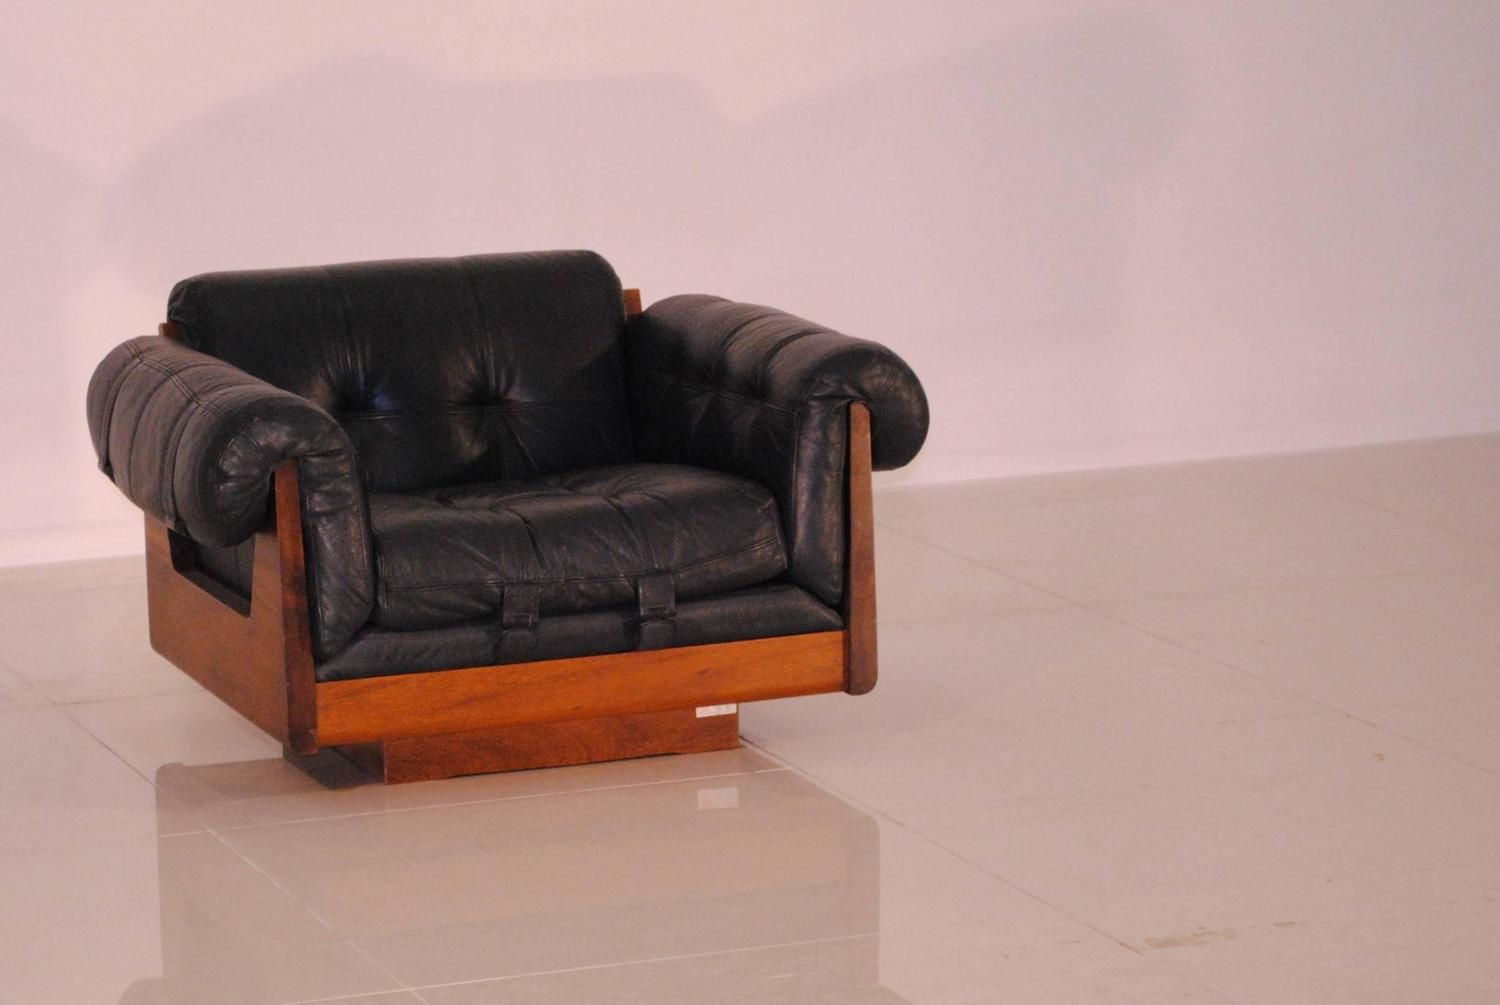 Low Leather Lounge Chair by Soto 1970s for sale at Pamono